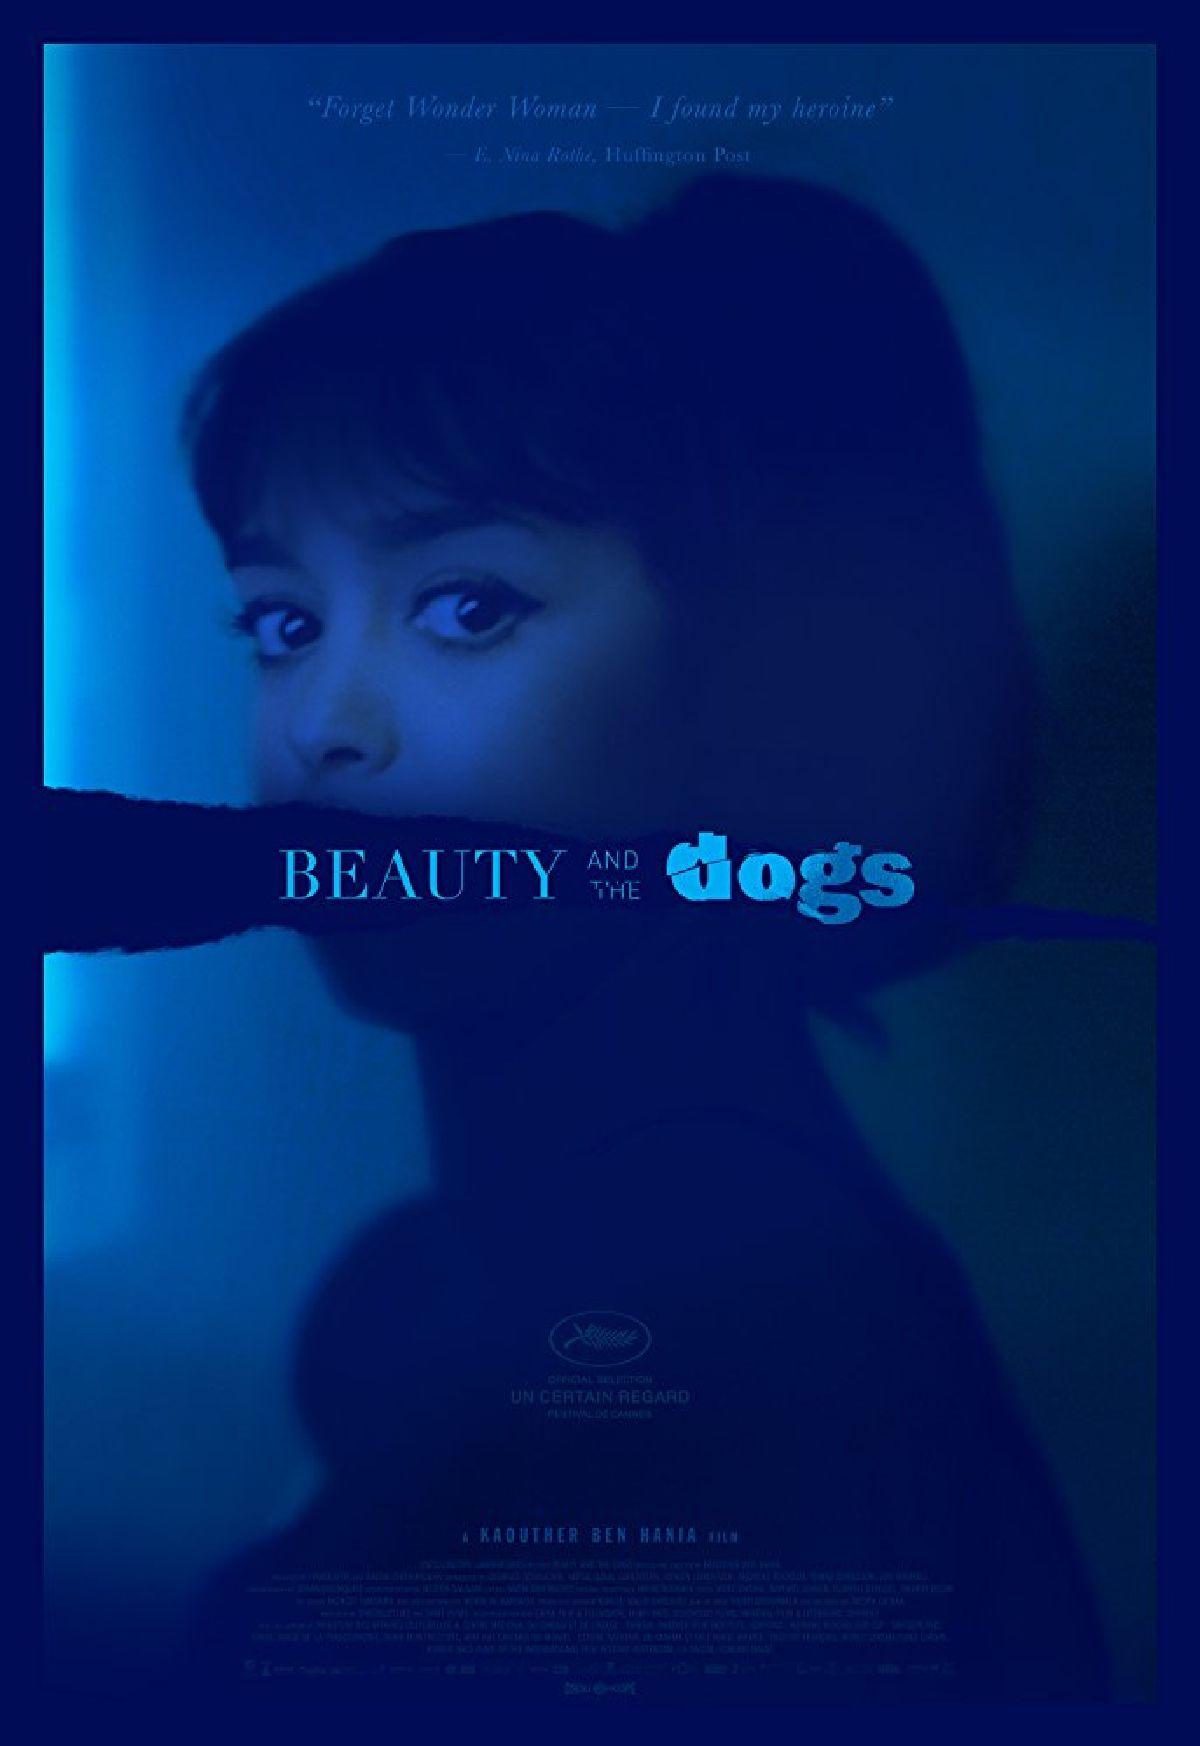 'Beauty And The Dogs' movie poster